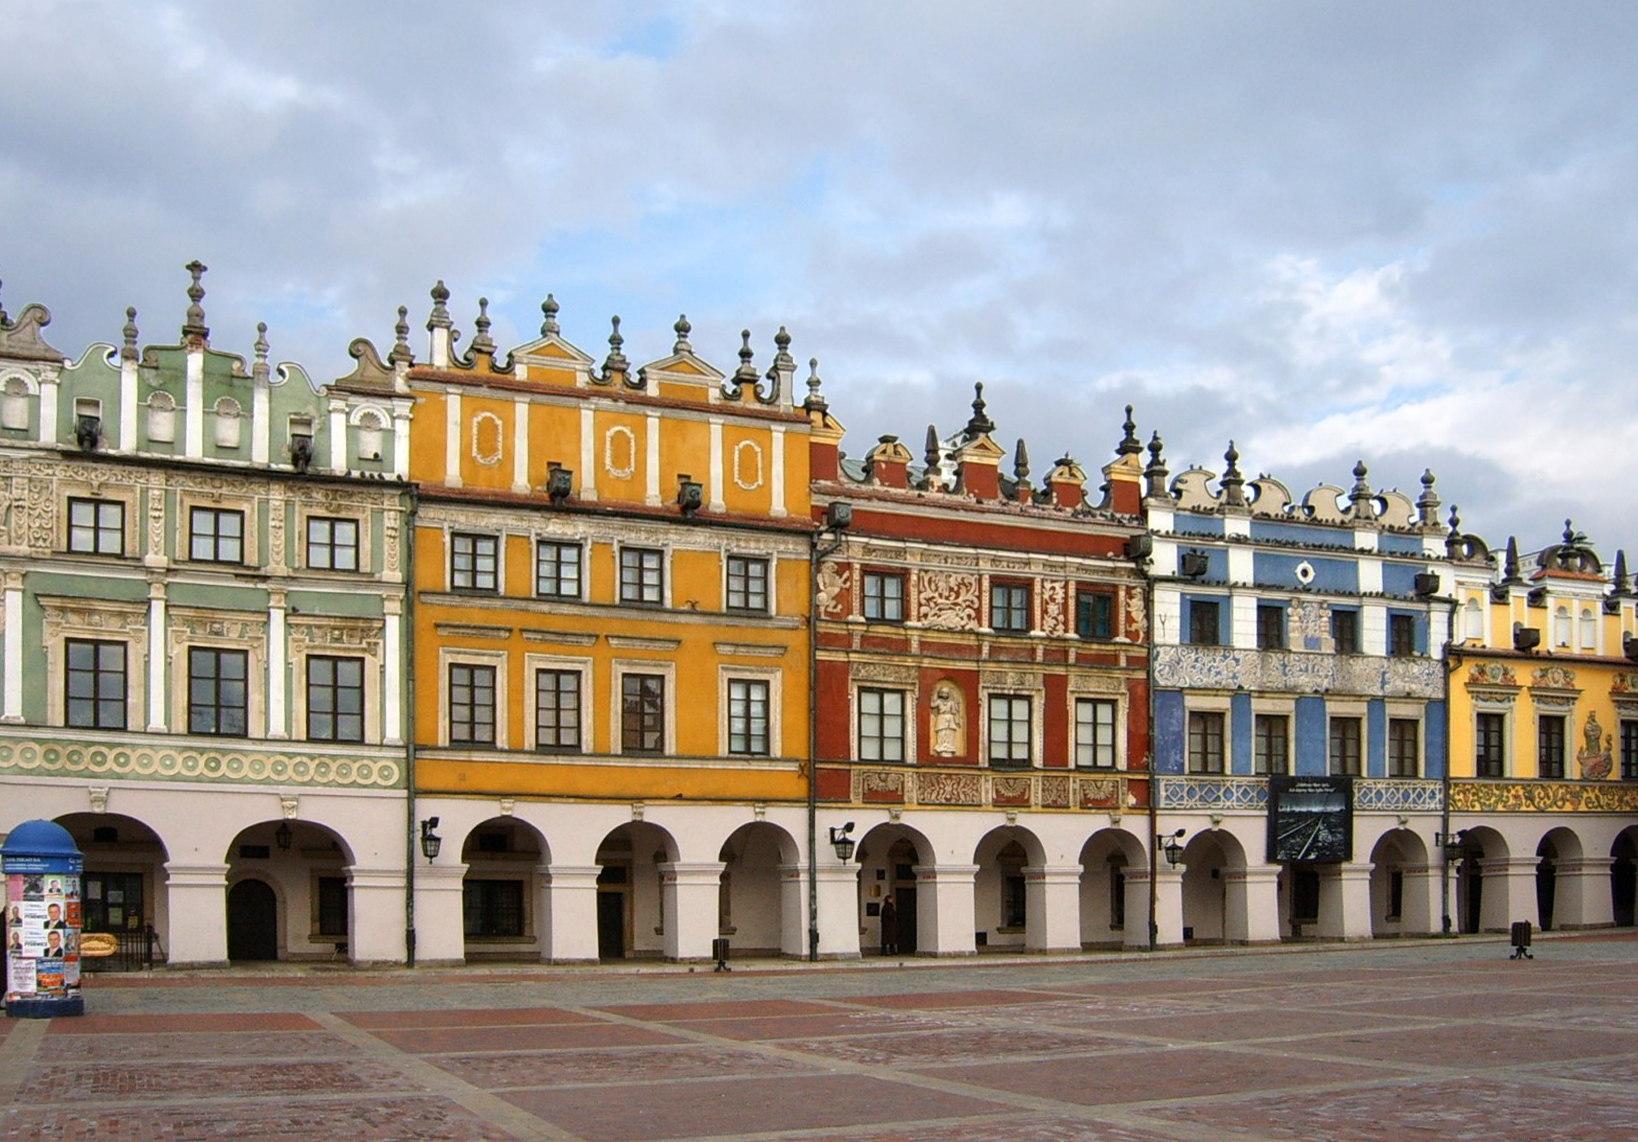 Houses of Armenian merchants dating back to the 17th century, by the market square in Zamość, south-eastern Poland; the Old City of Zamość is on the UNESCO World Heritage List